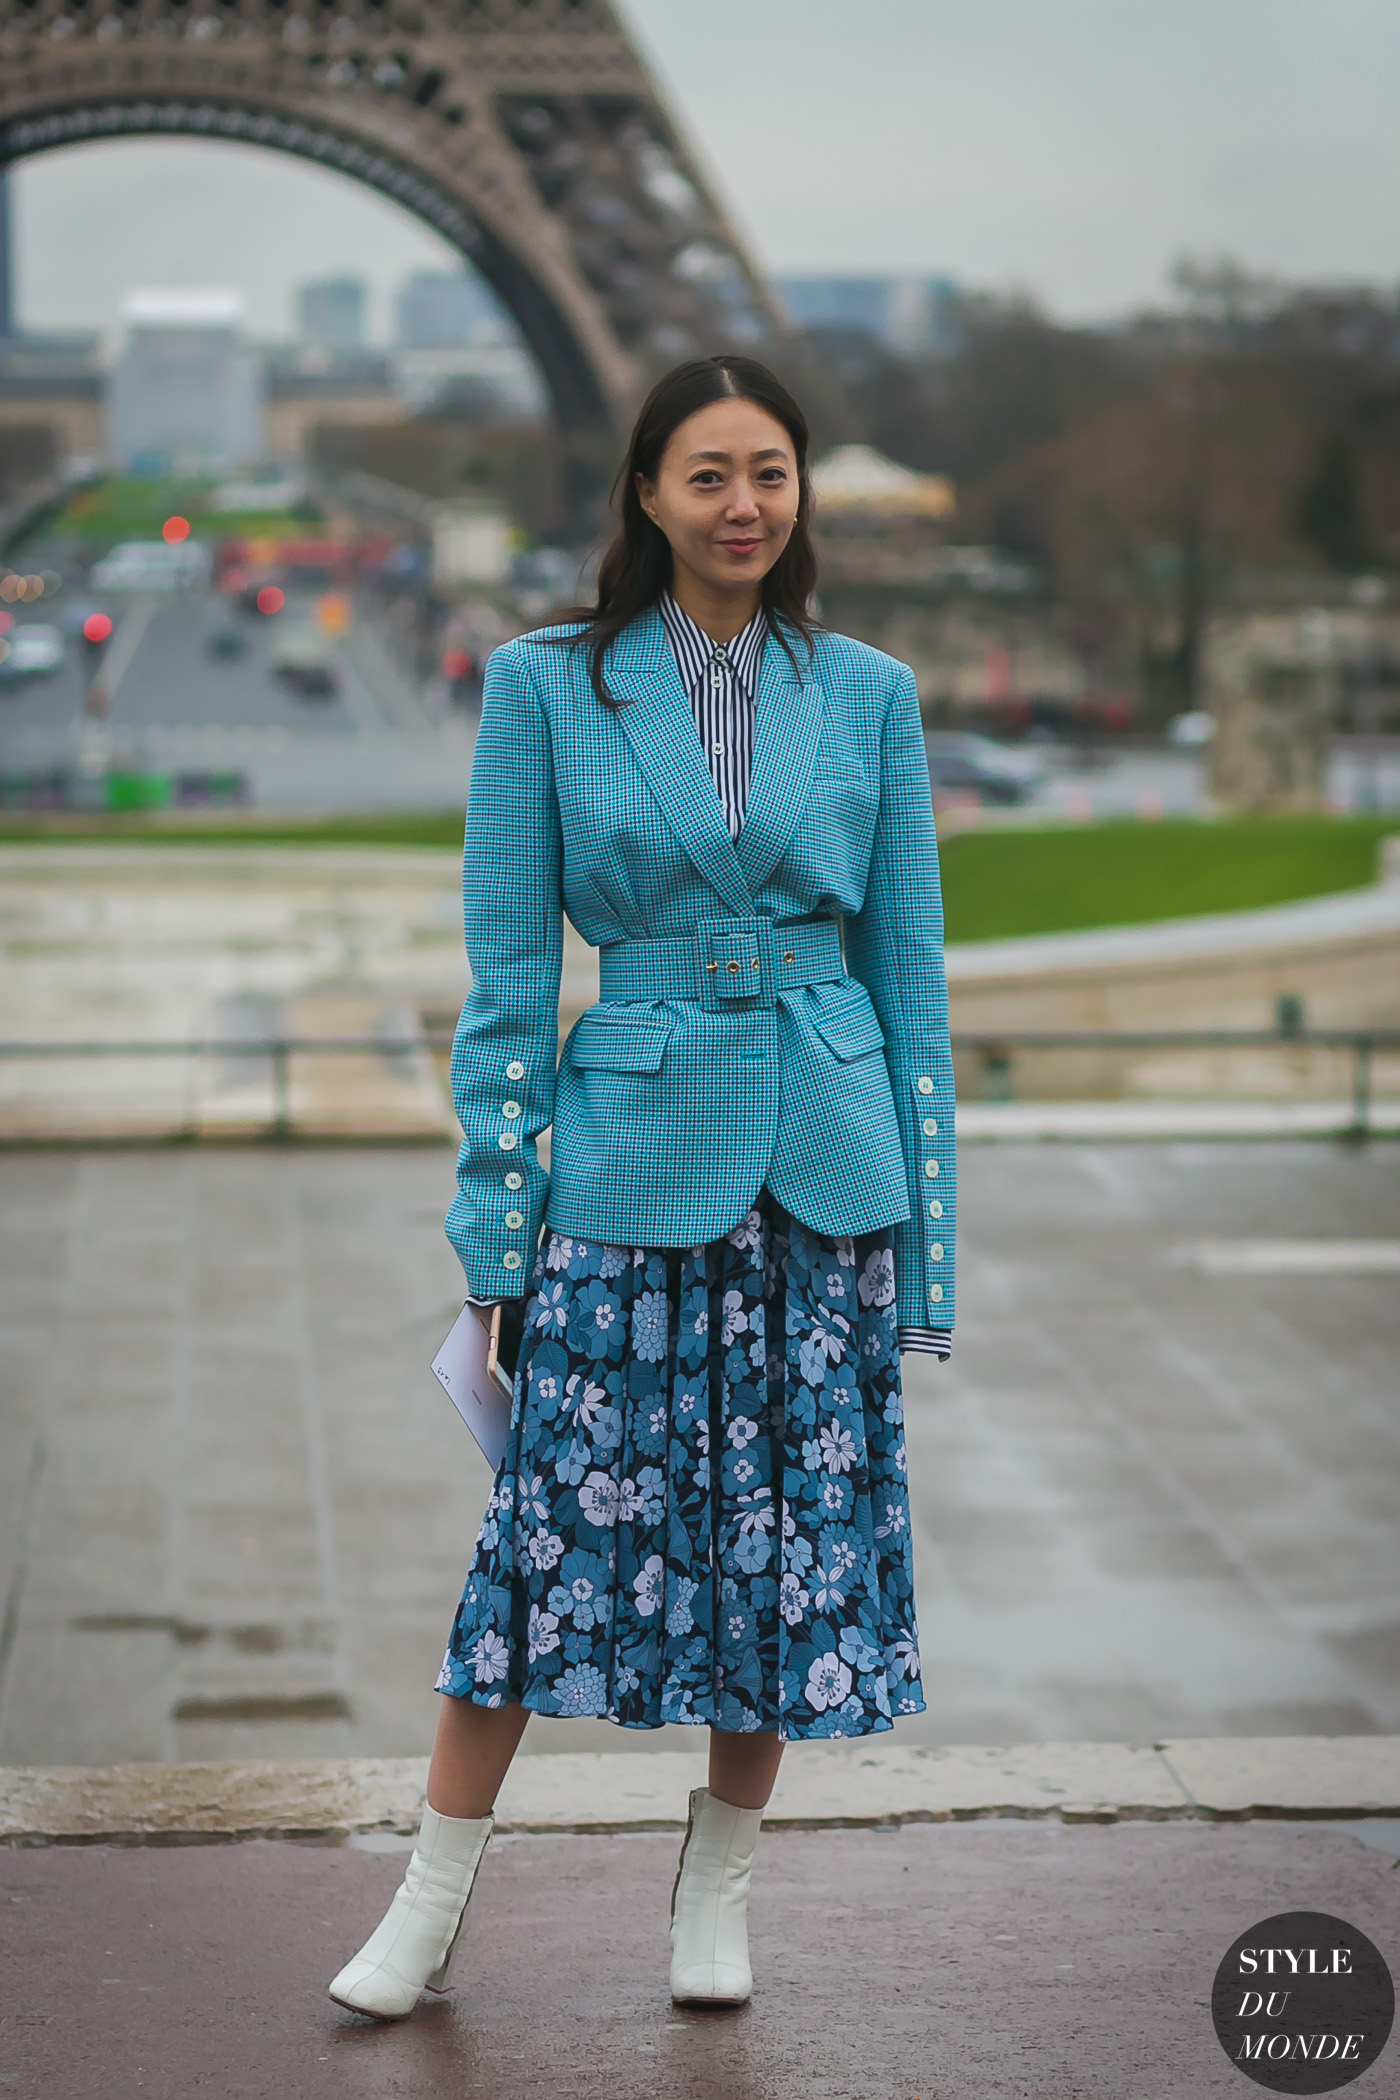 Jiyoung Kim by STYLEDUMONDE Street Style Fashion Photography